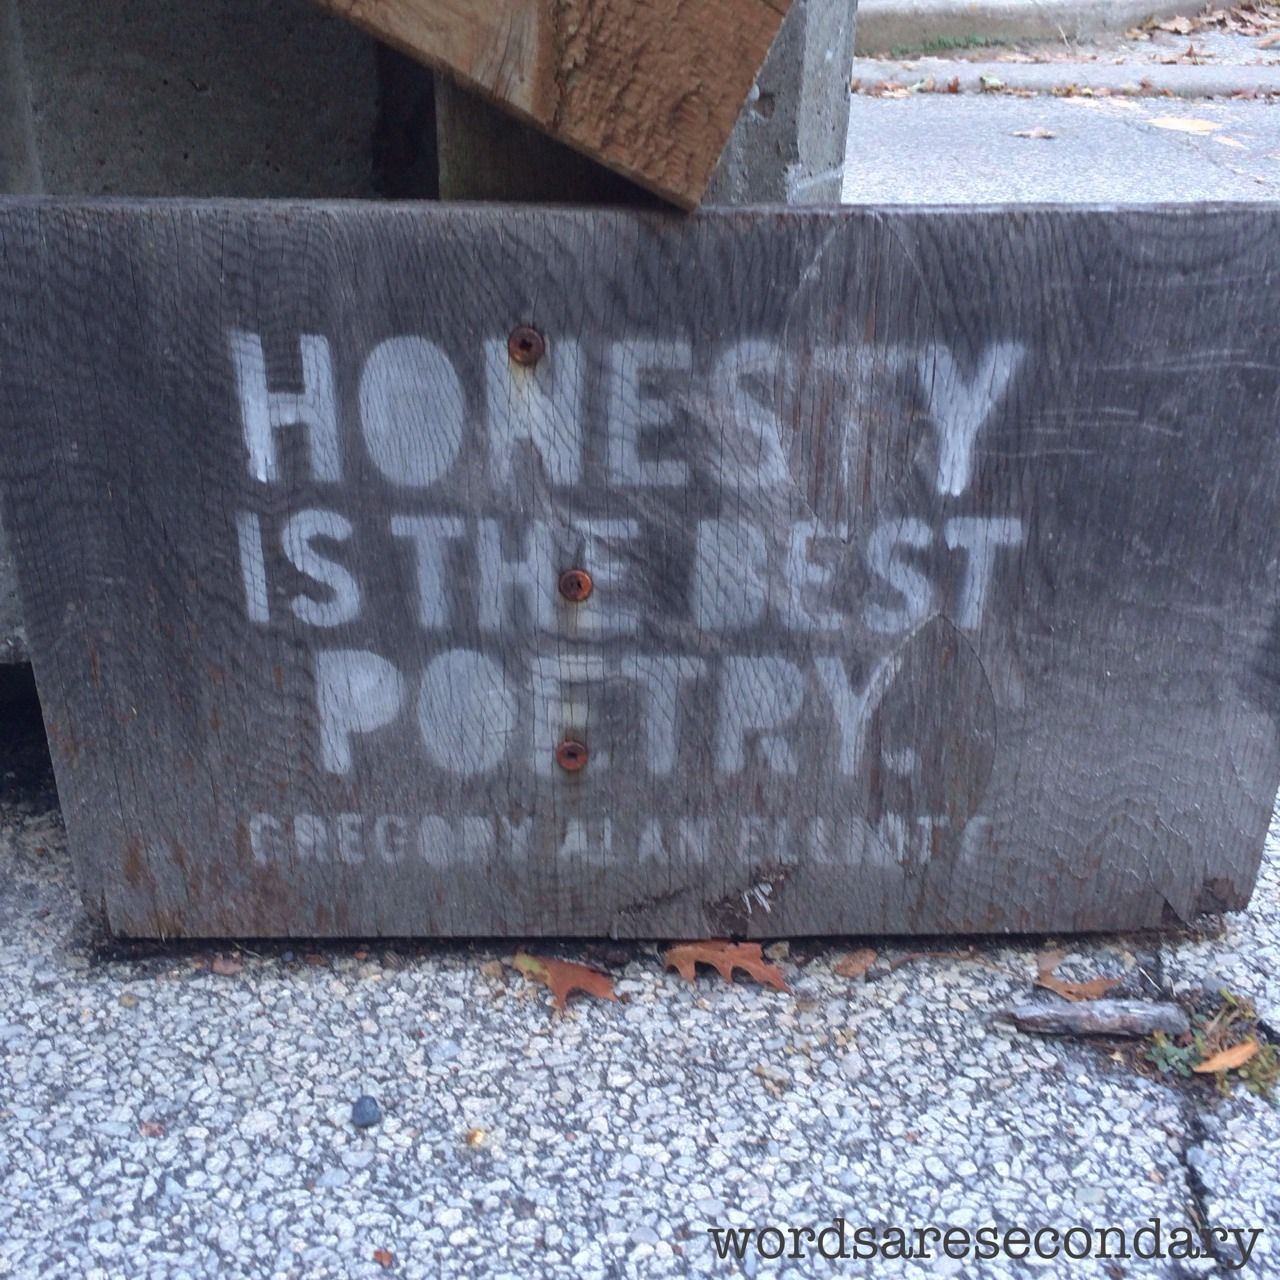 Spotted on a hike October 11, 2013. Truth. #honesty #poetry